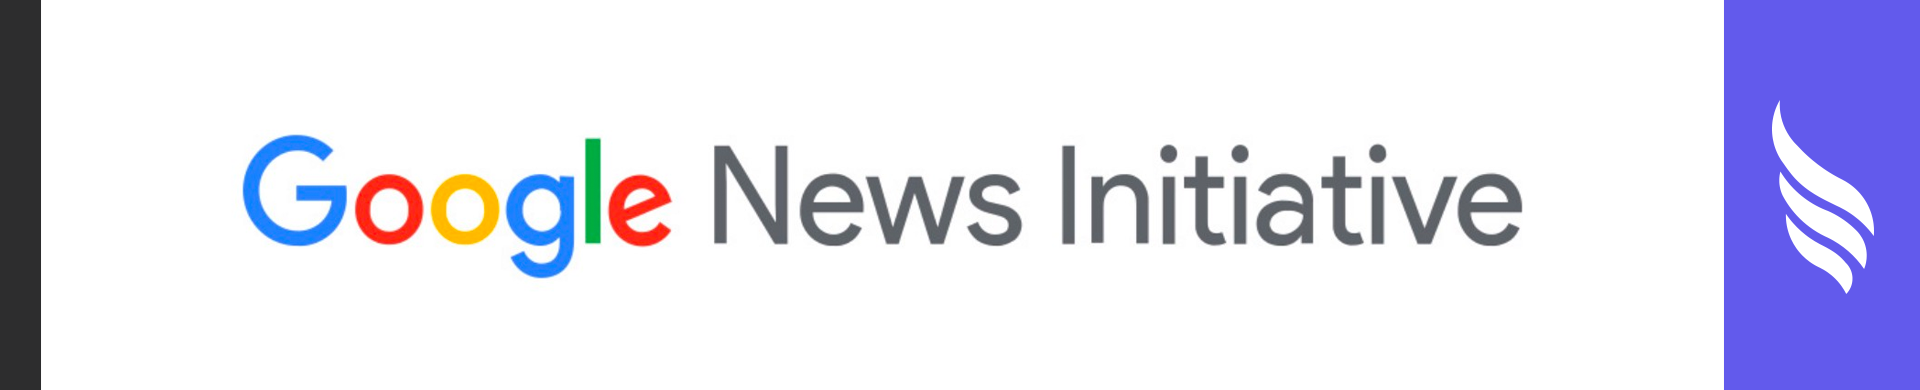 Google chooses WhiteBeard for funding through Google News Initiative out of 527 applicants